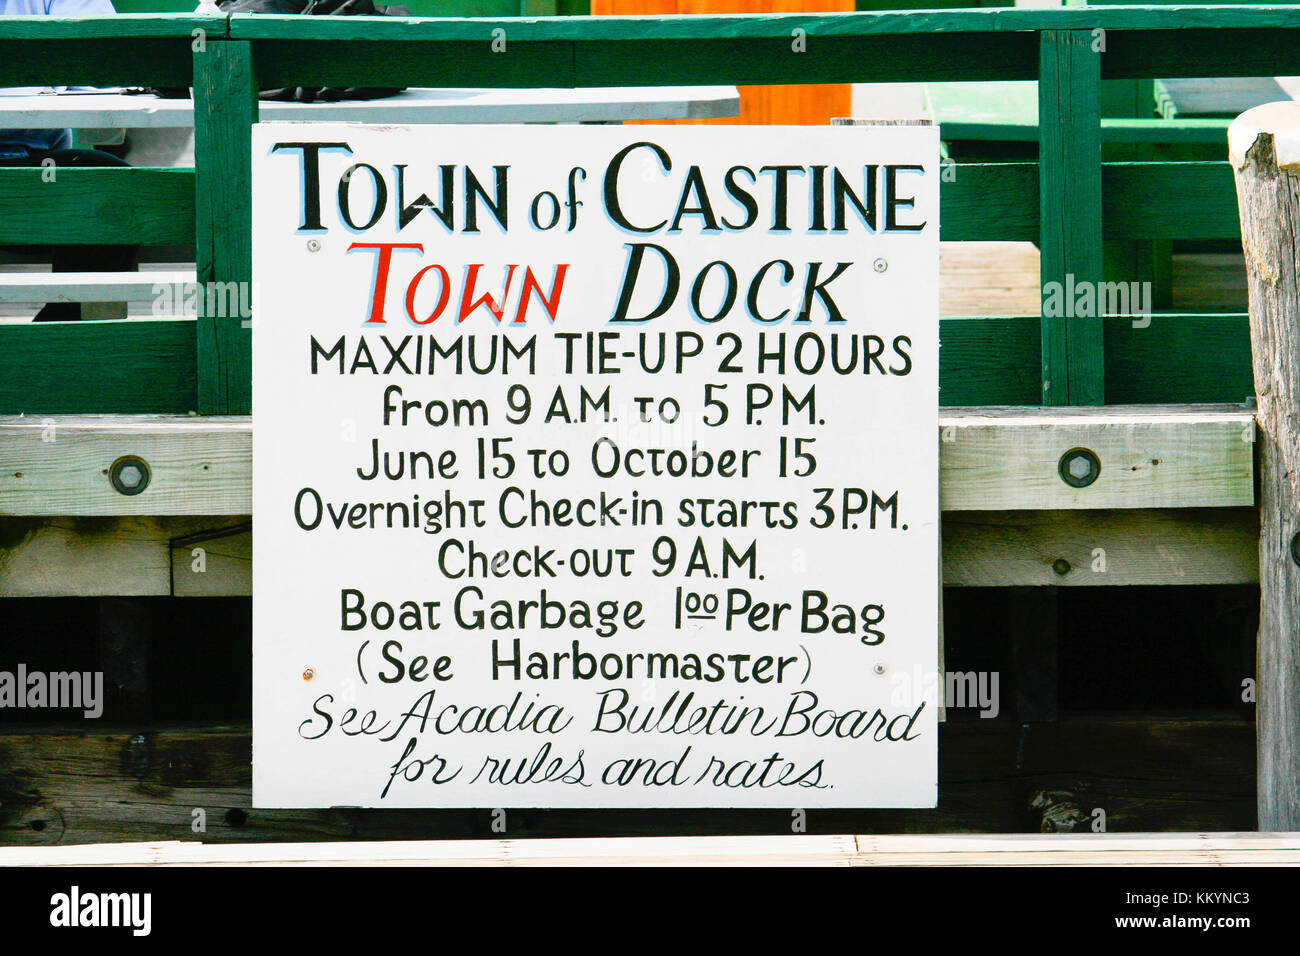 Sign at the town dock in Castine, Maine, UK - Stock Image